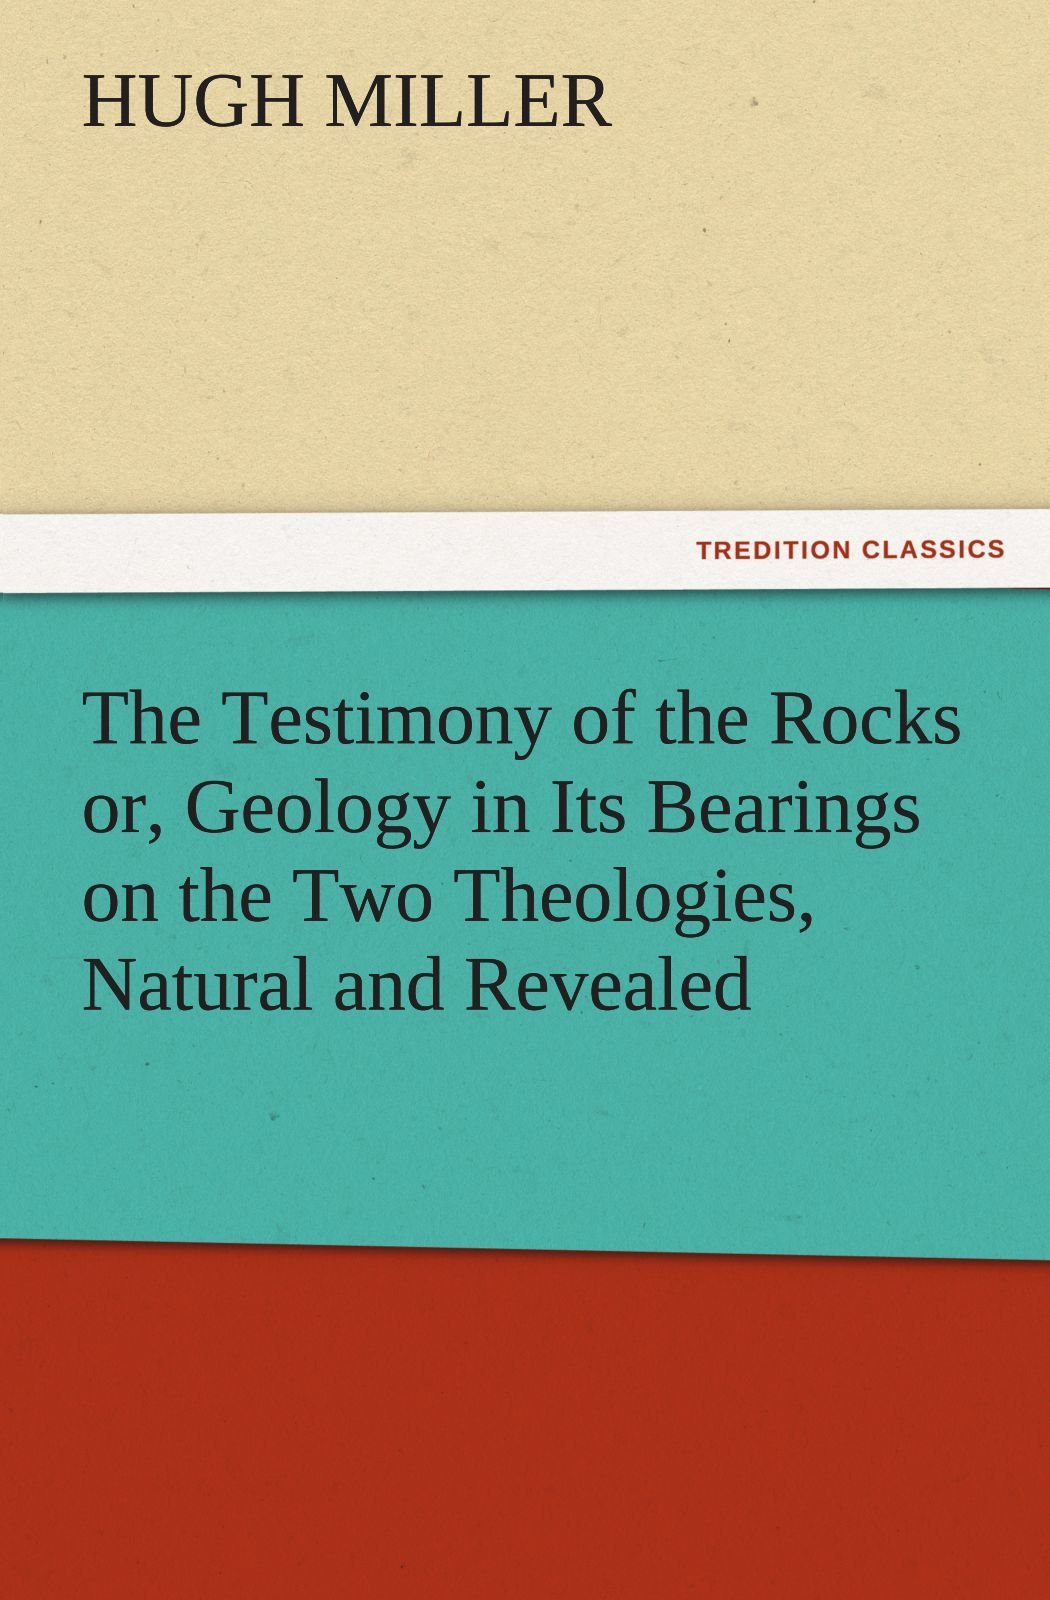 Read Online The Testimony of the Rocks or, Geology in Its Bearings on the Two Theologies, Natural and Revealed (TREDITION CLASSICS) pdf